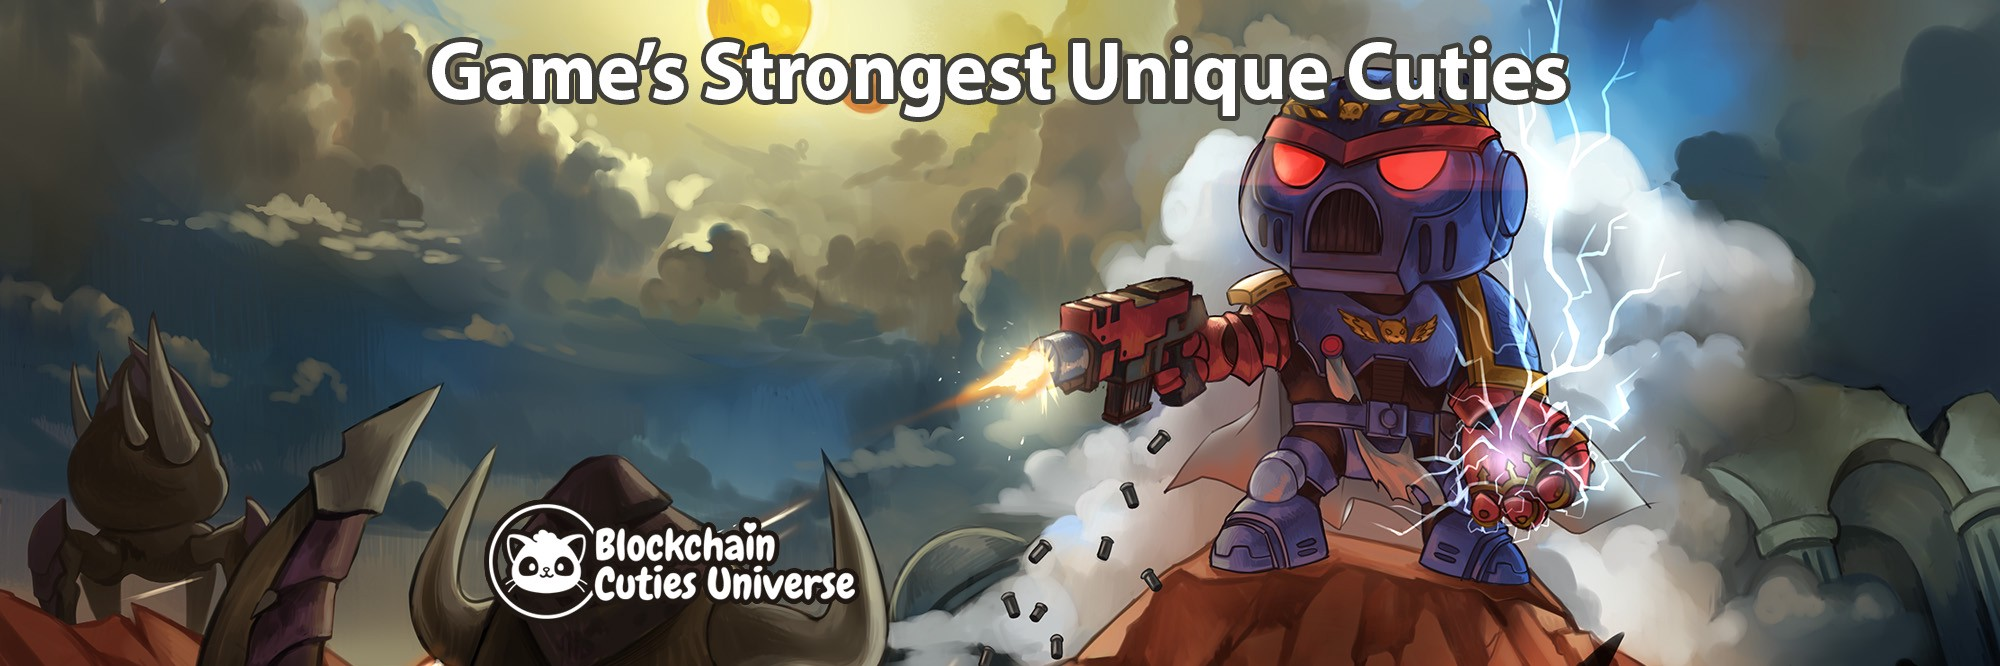 [Blockchain Cuties Universe] Best Unique Cuties in the Game